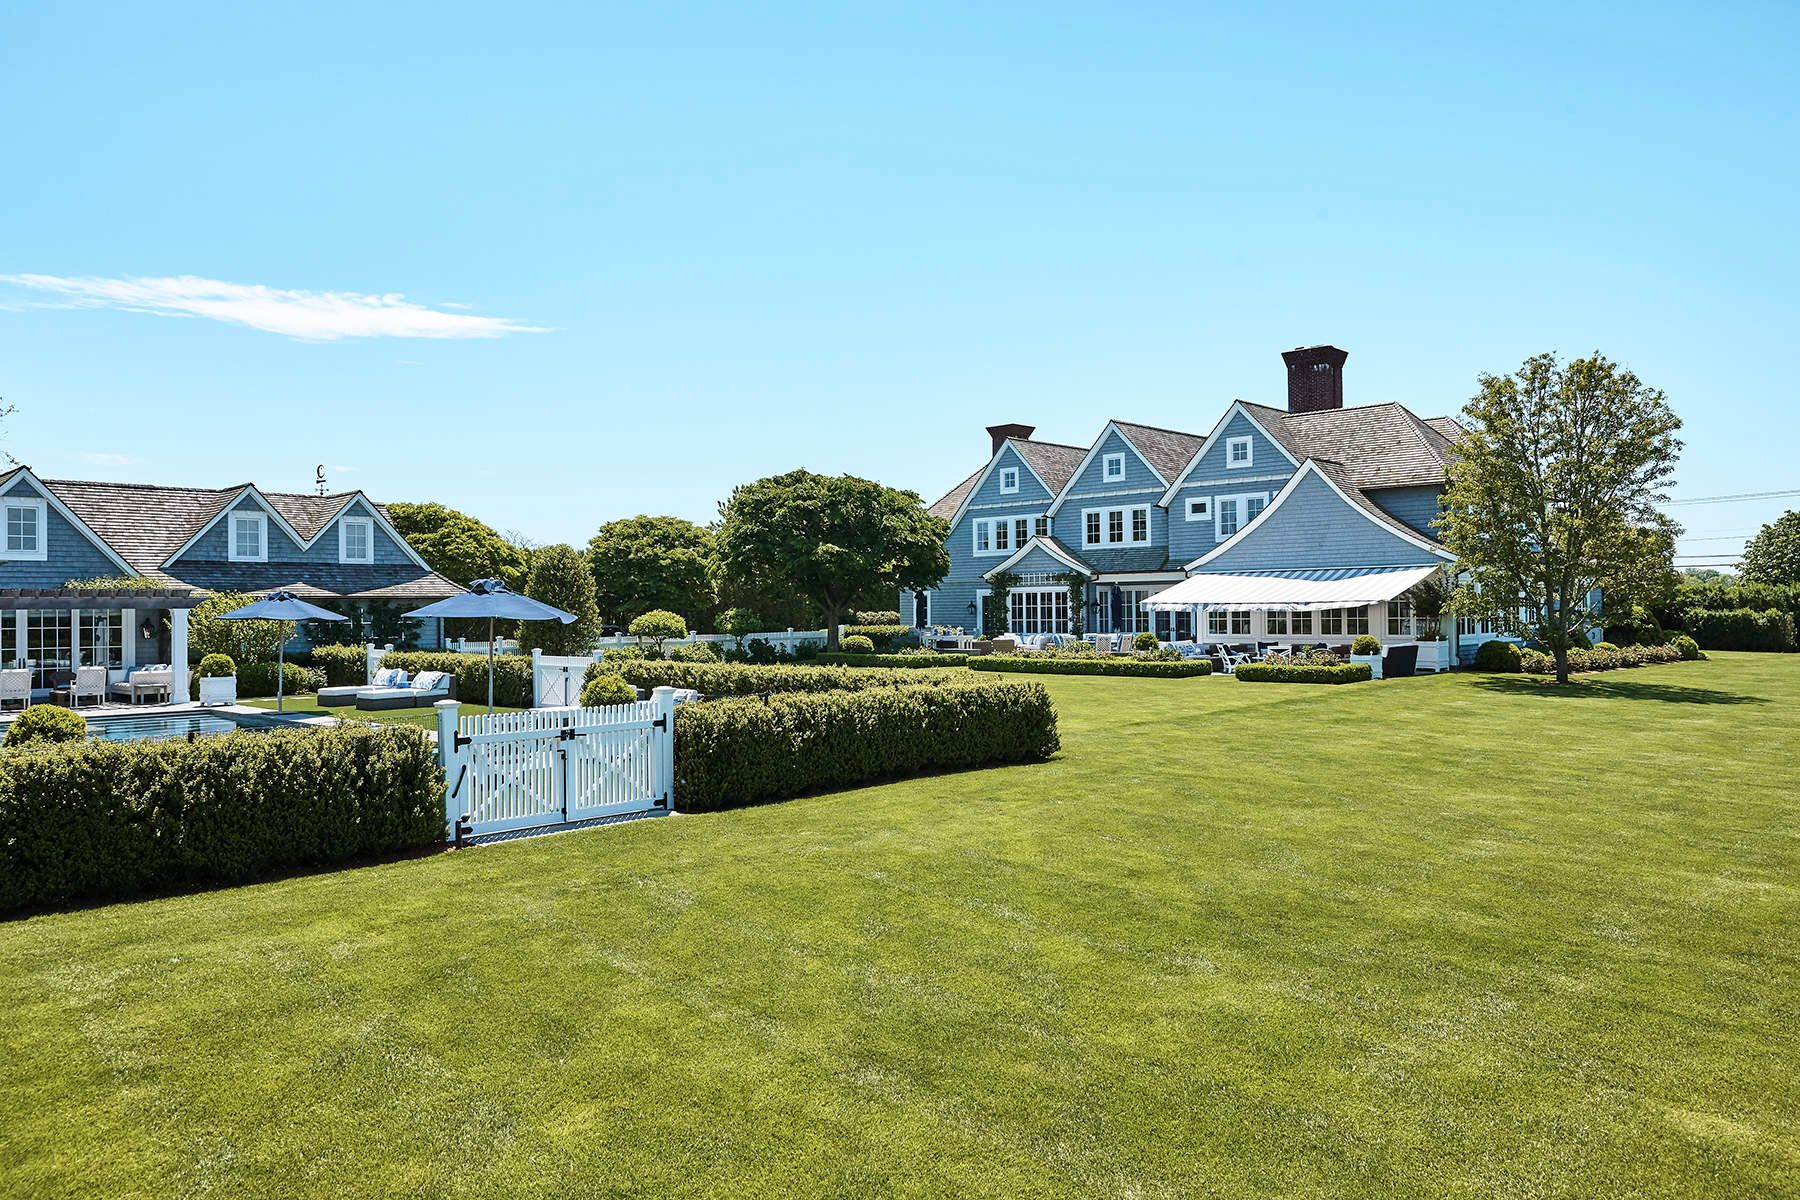 Single Family Homes for Sale at Magnificent Estate on 2 Lots 944 Mecox Road Bridgehampton, New York 11932 United States